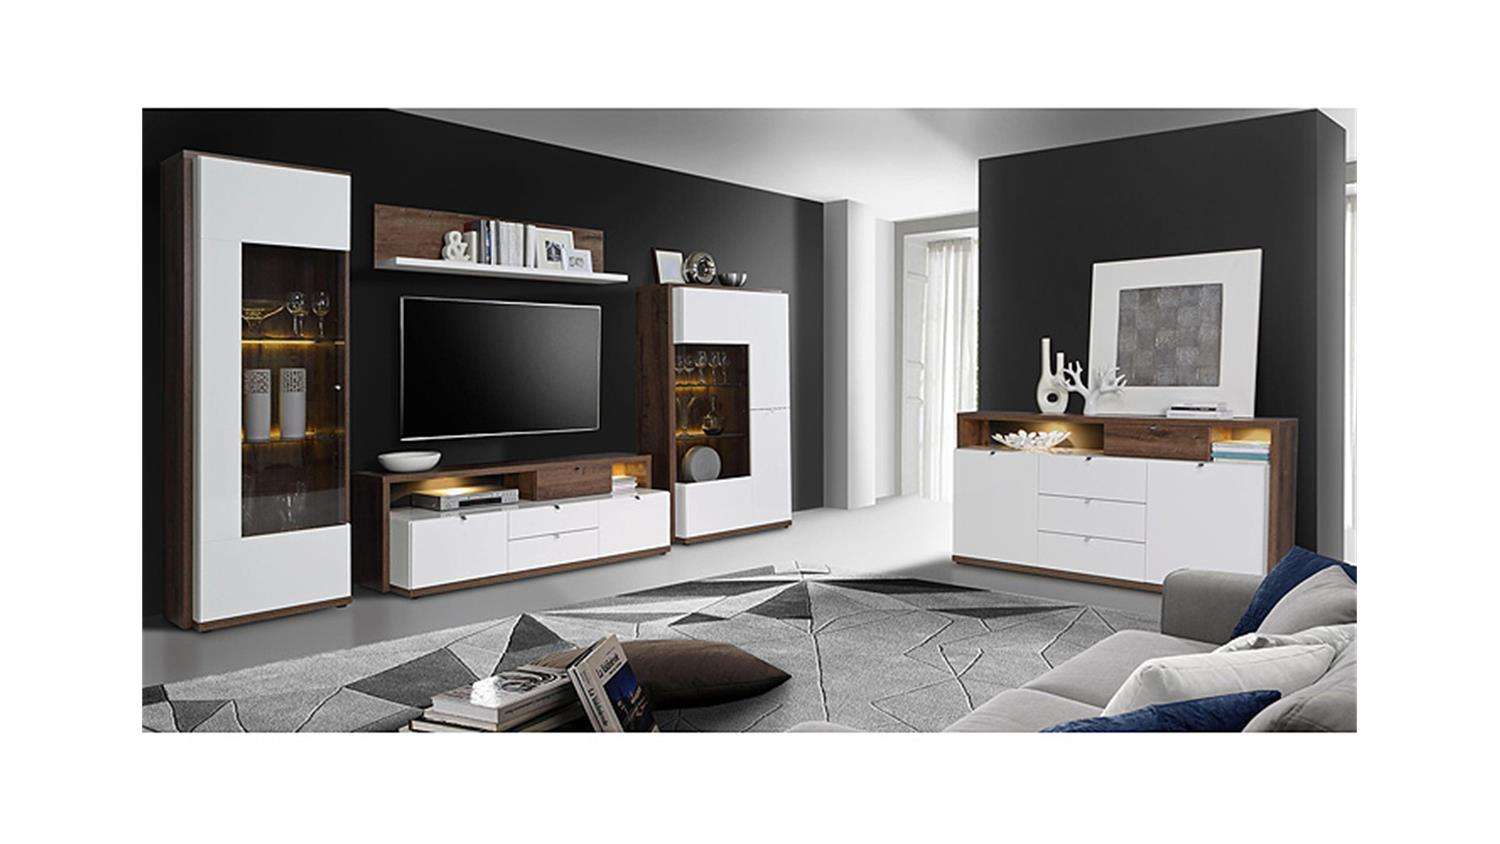 vitrine alcano glasvitrine wei hochglanz schlammeiche. Black Bedroom Furniture Sets. Home Design Ideas